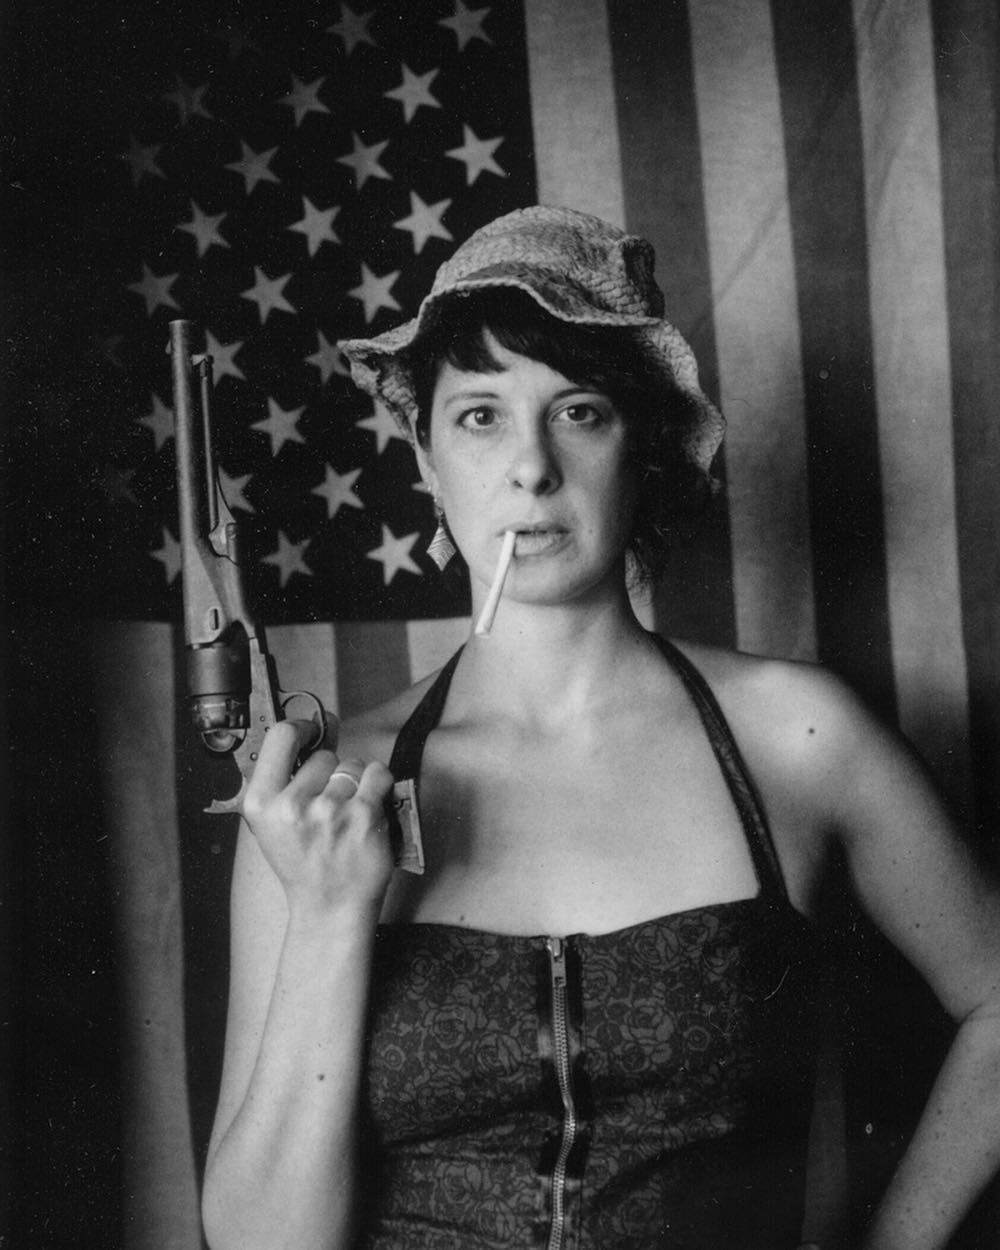 Kimberly with gun and flag.